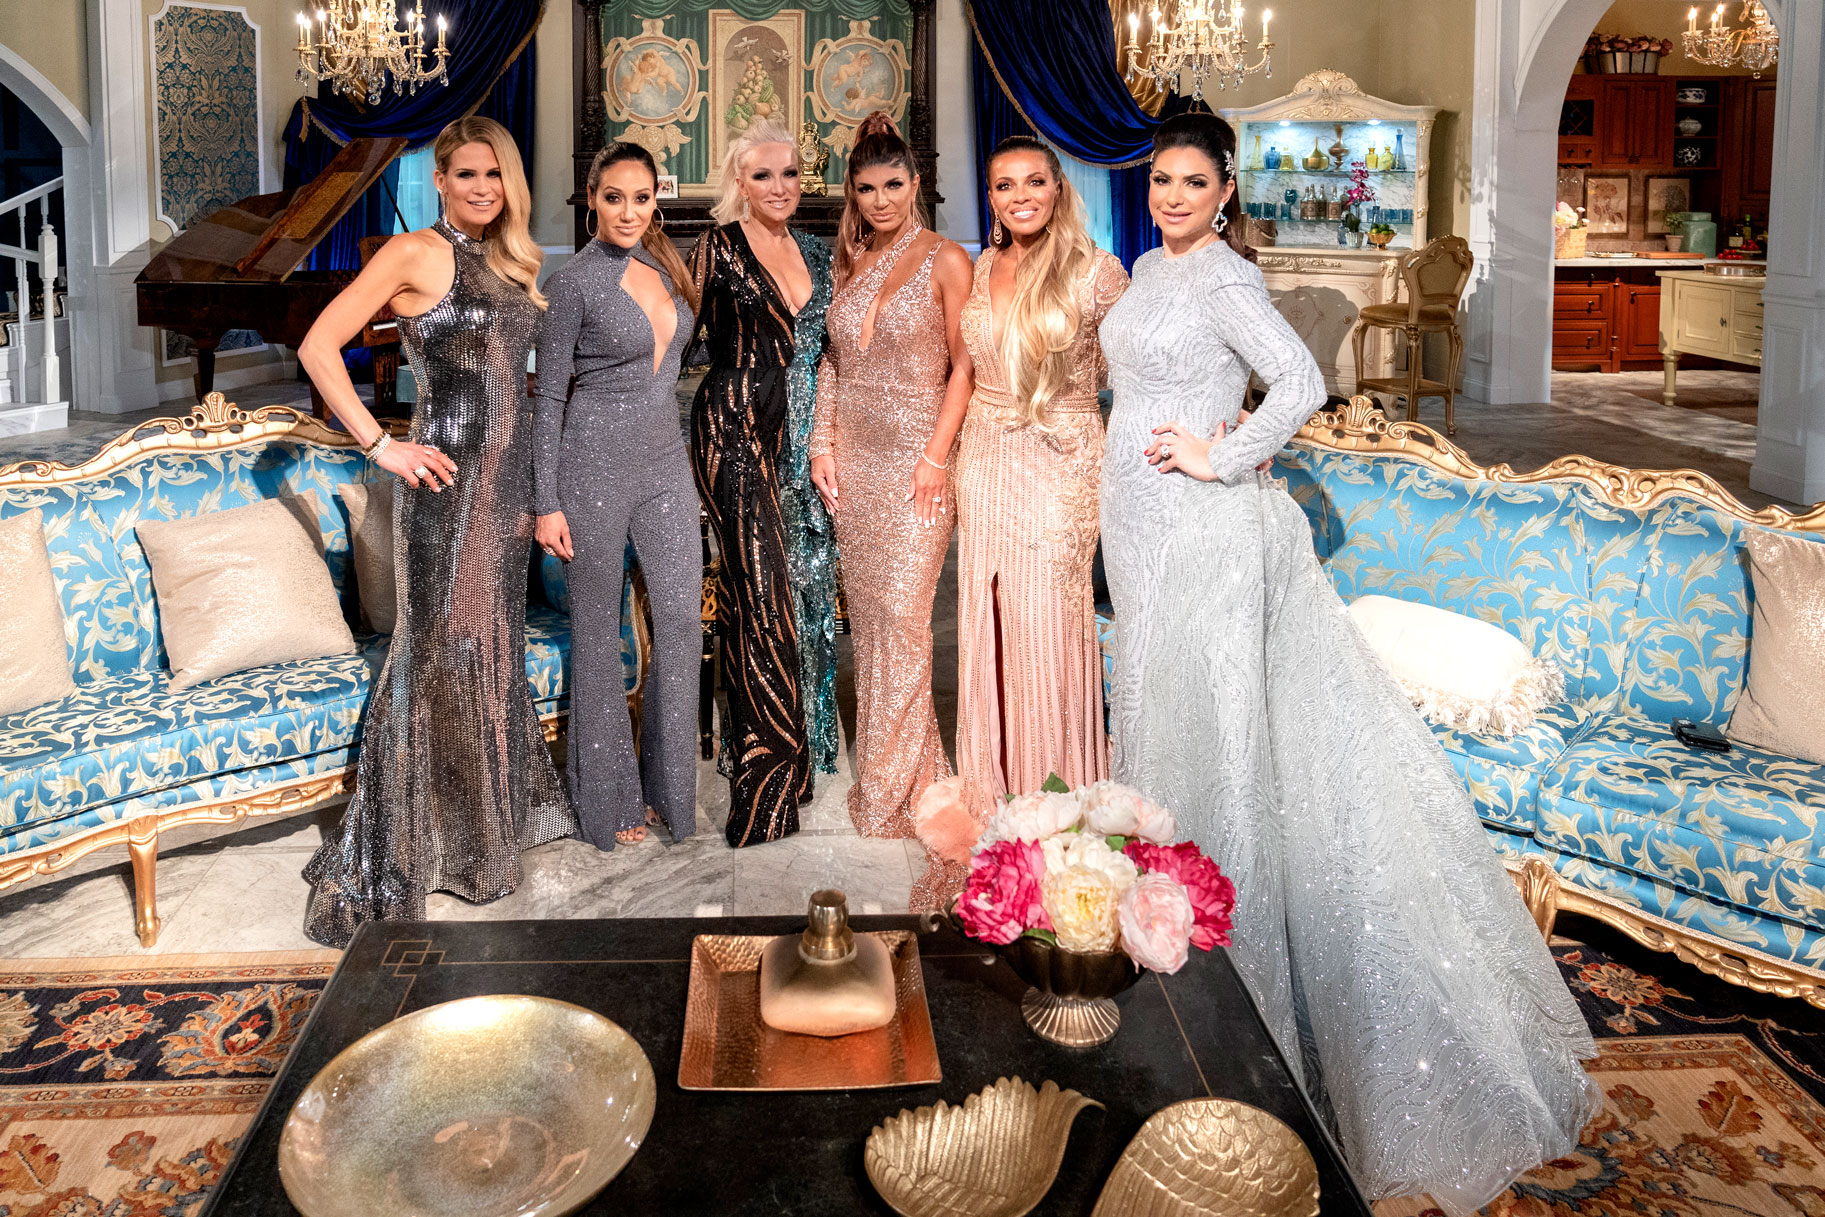 real-housewives-of-new-jersey-season-9-reunion-fashion-25